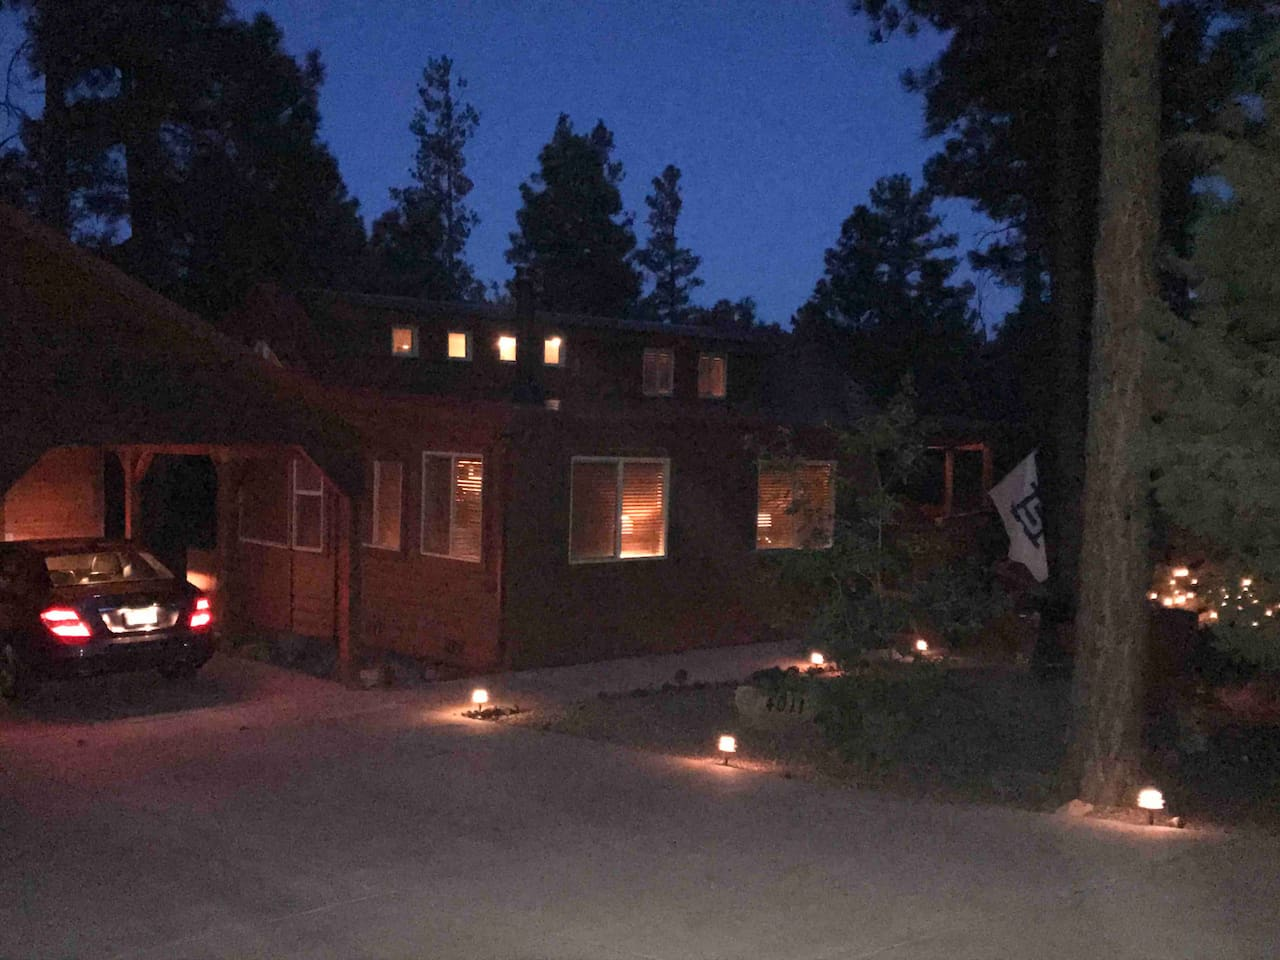 Night time the cabin glows with mood lighting in the garden and surrounding area